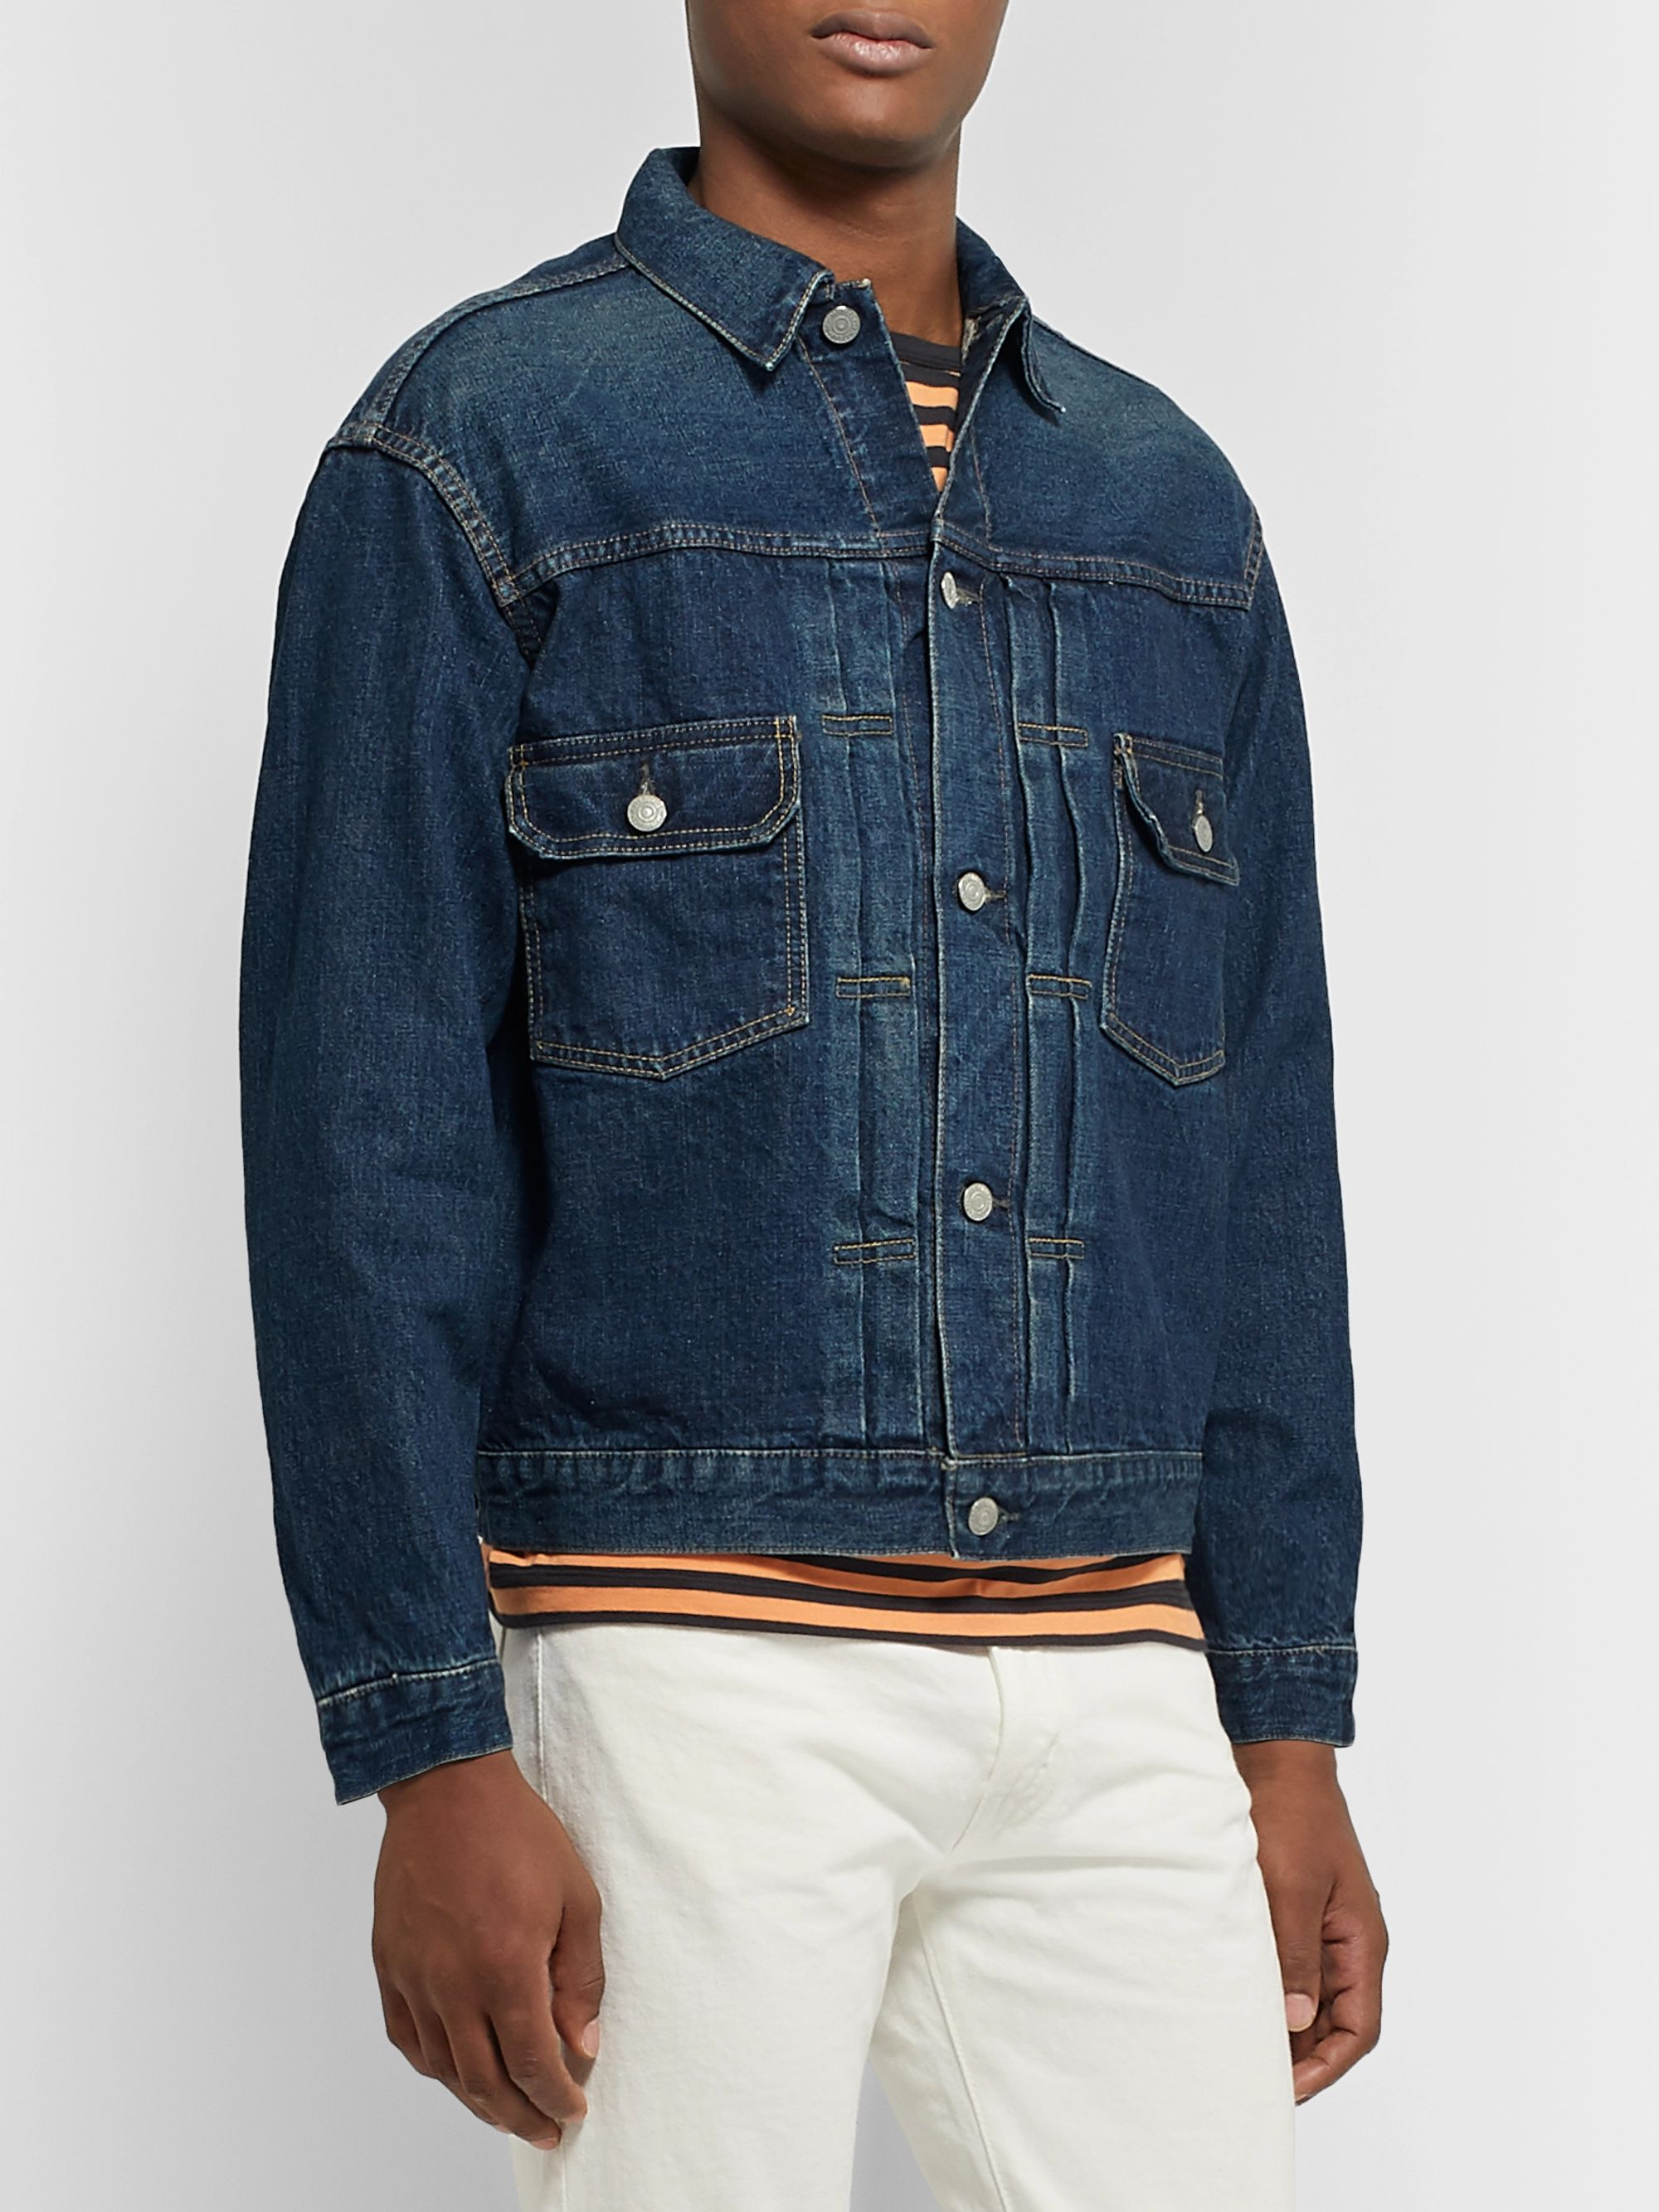 OrSlow Selvedge Denim Jacket